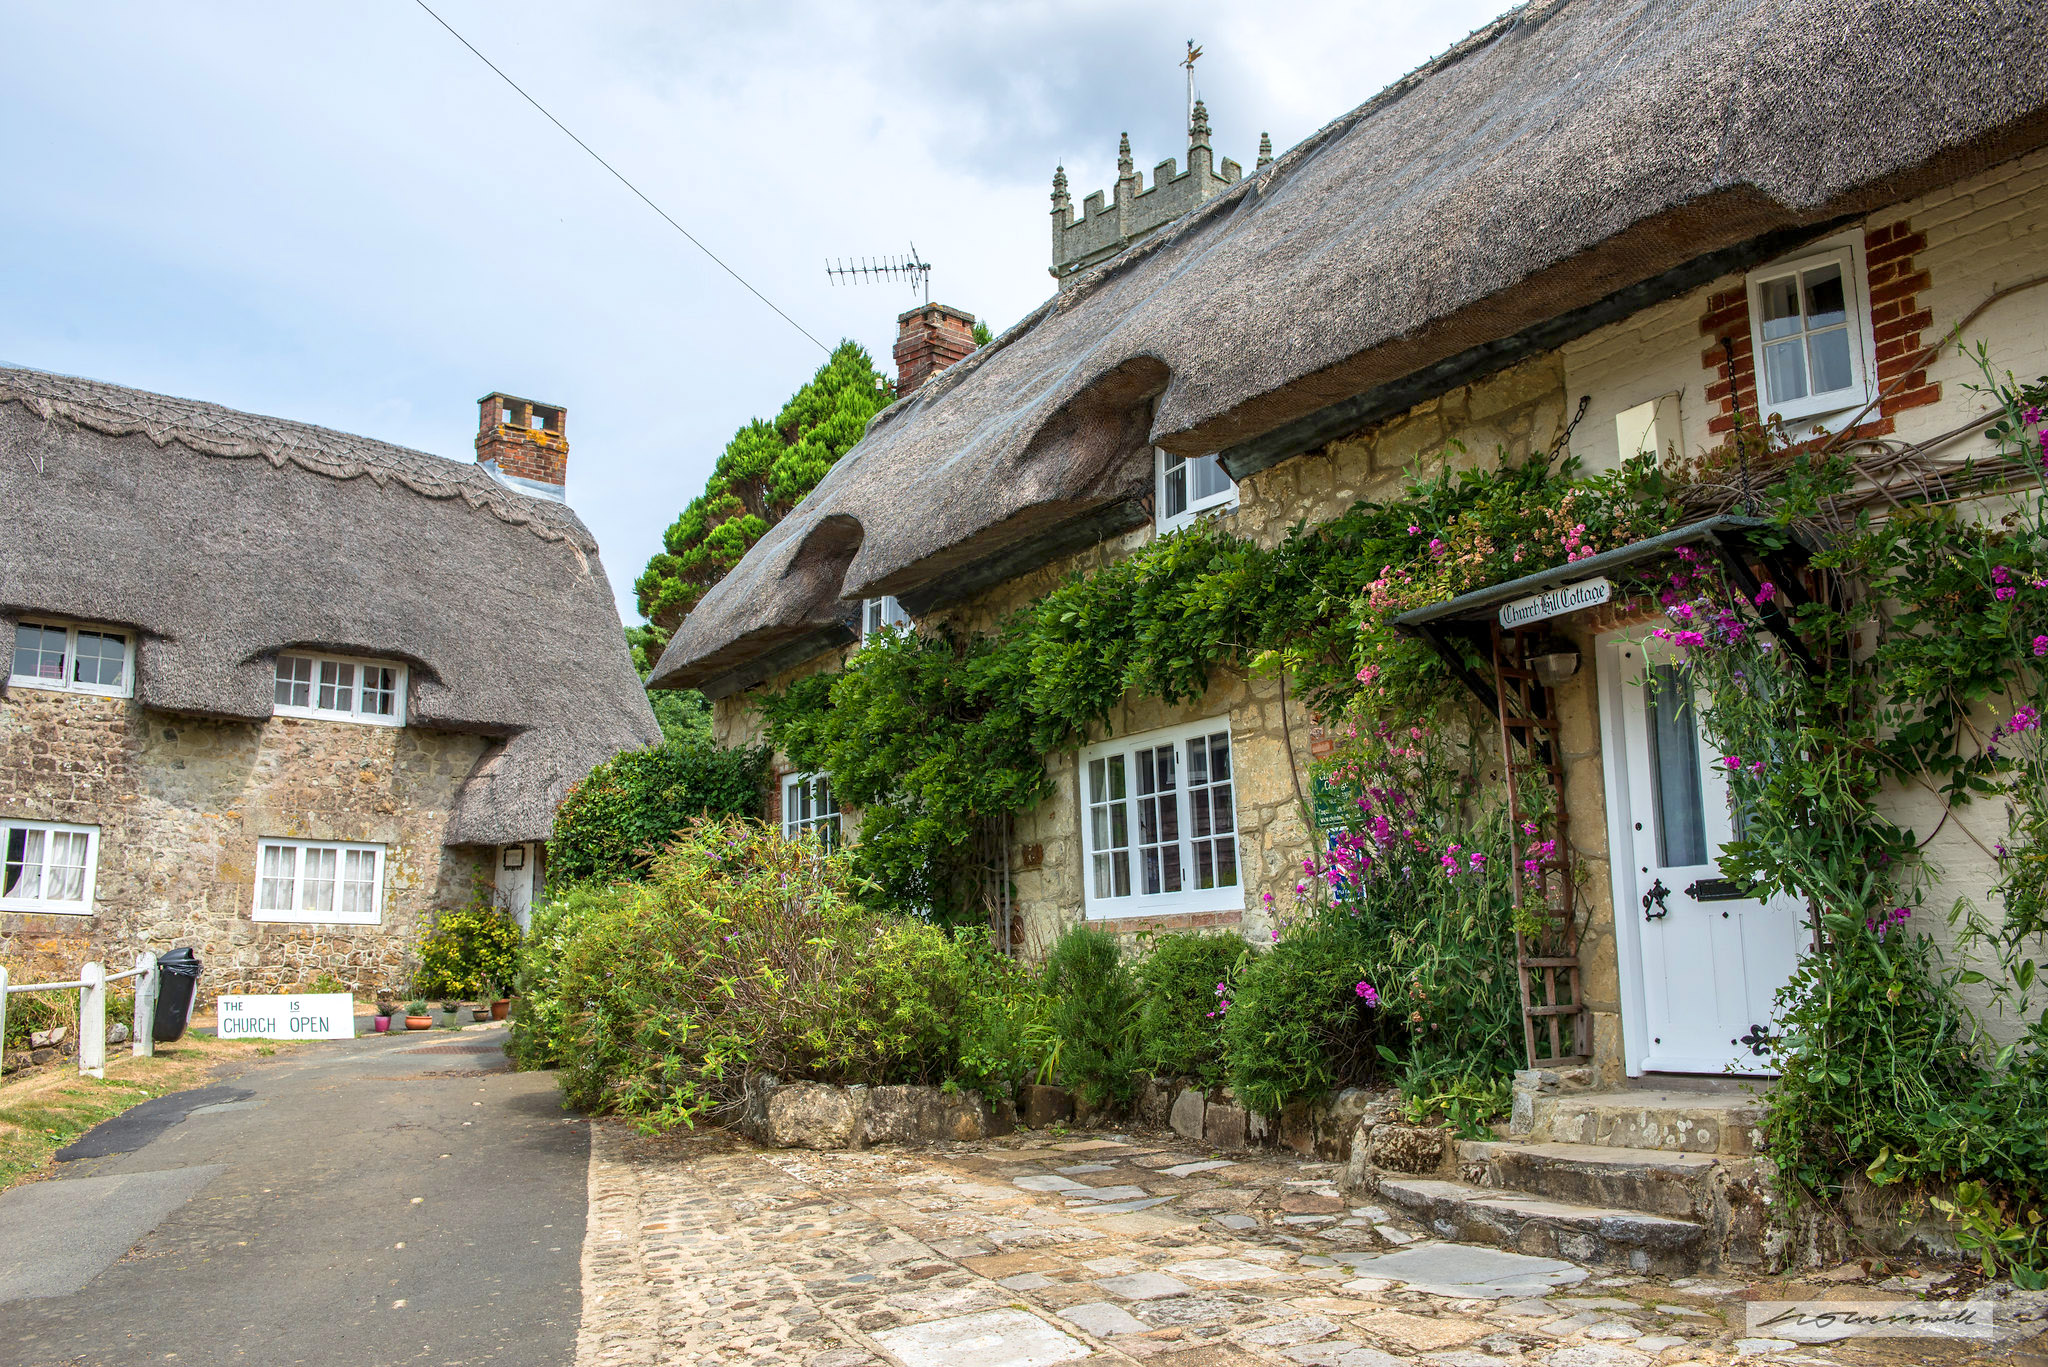 Godshill, Isle of Wight - cottages on Church Hill by Neil Cresswell.jpg